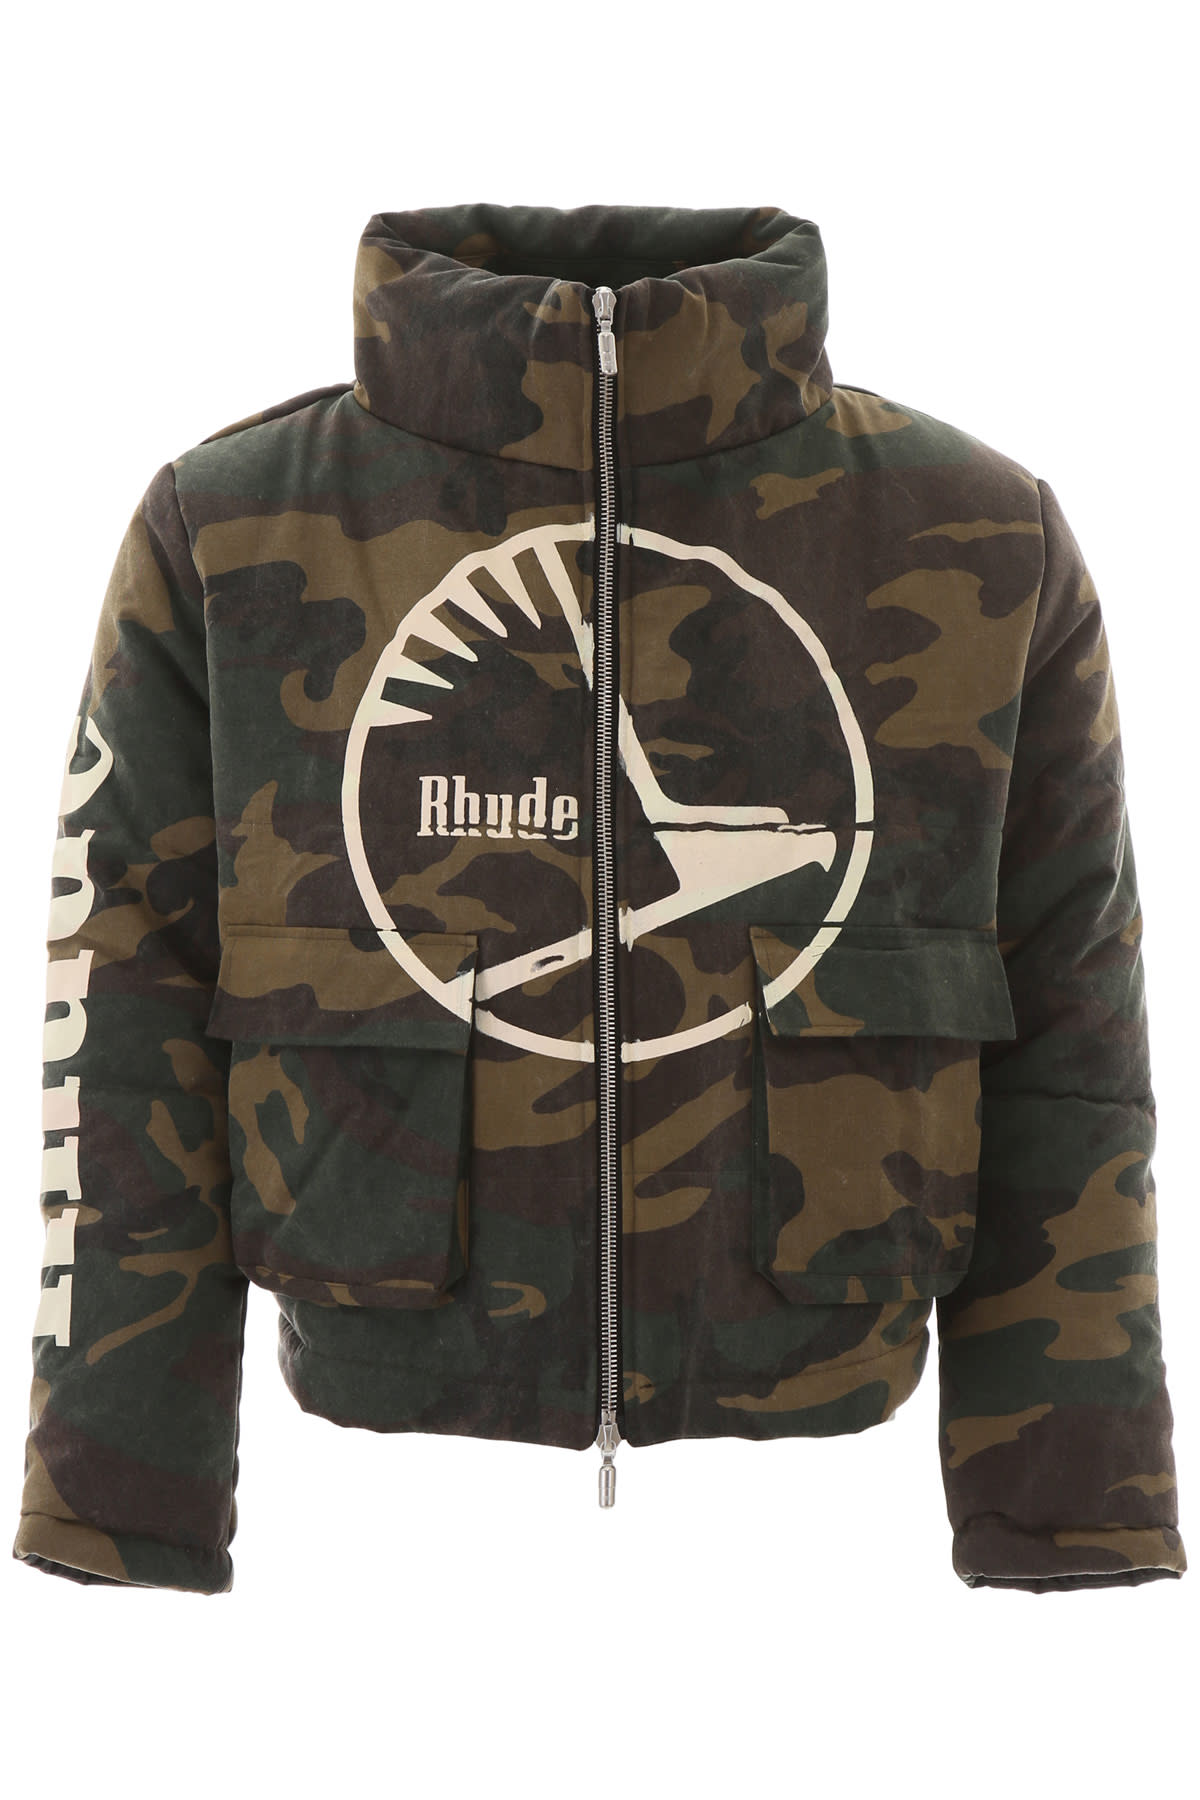 Rhude Cottons CAMOUFLAGE PUFFER JACKET